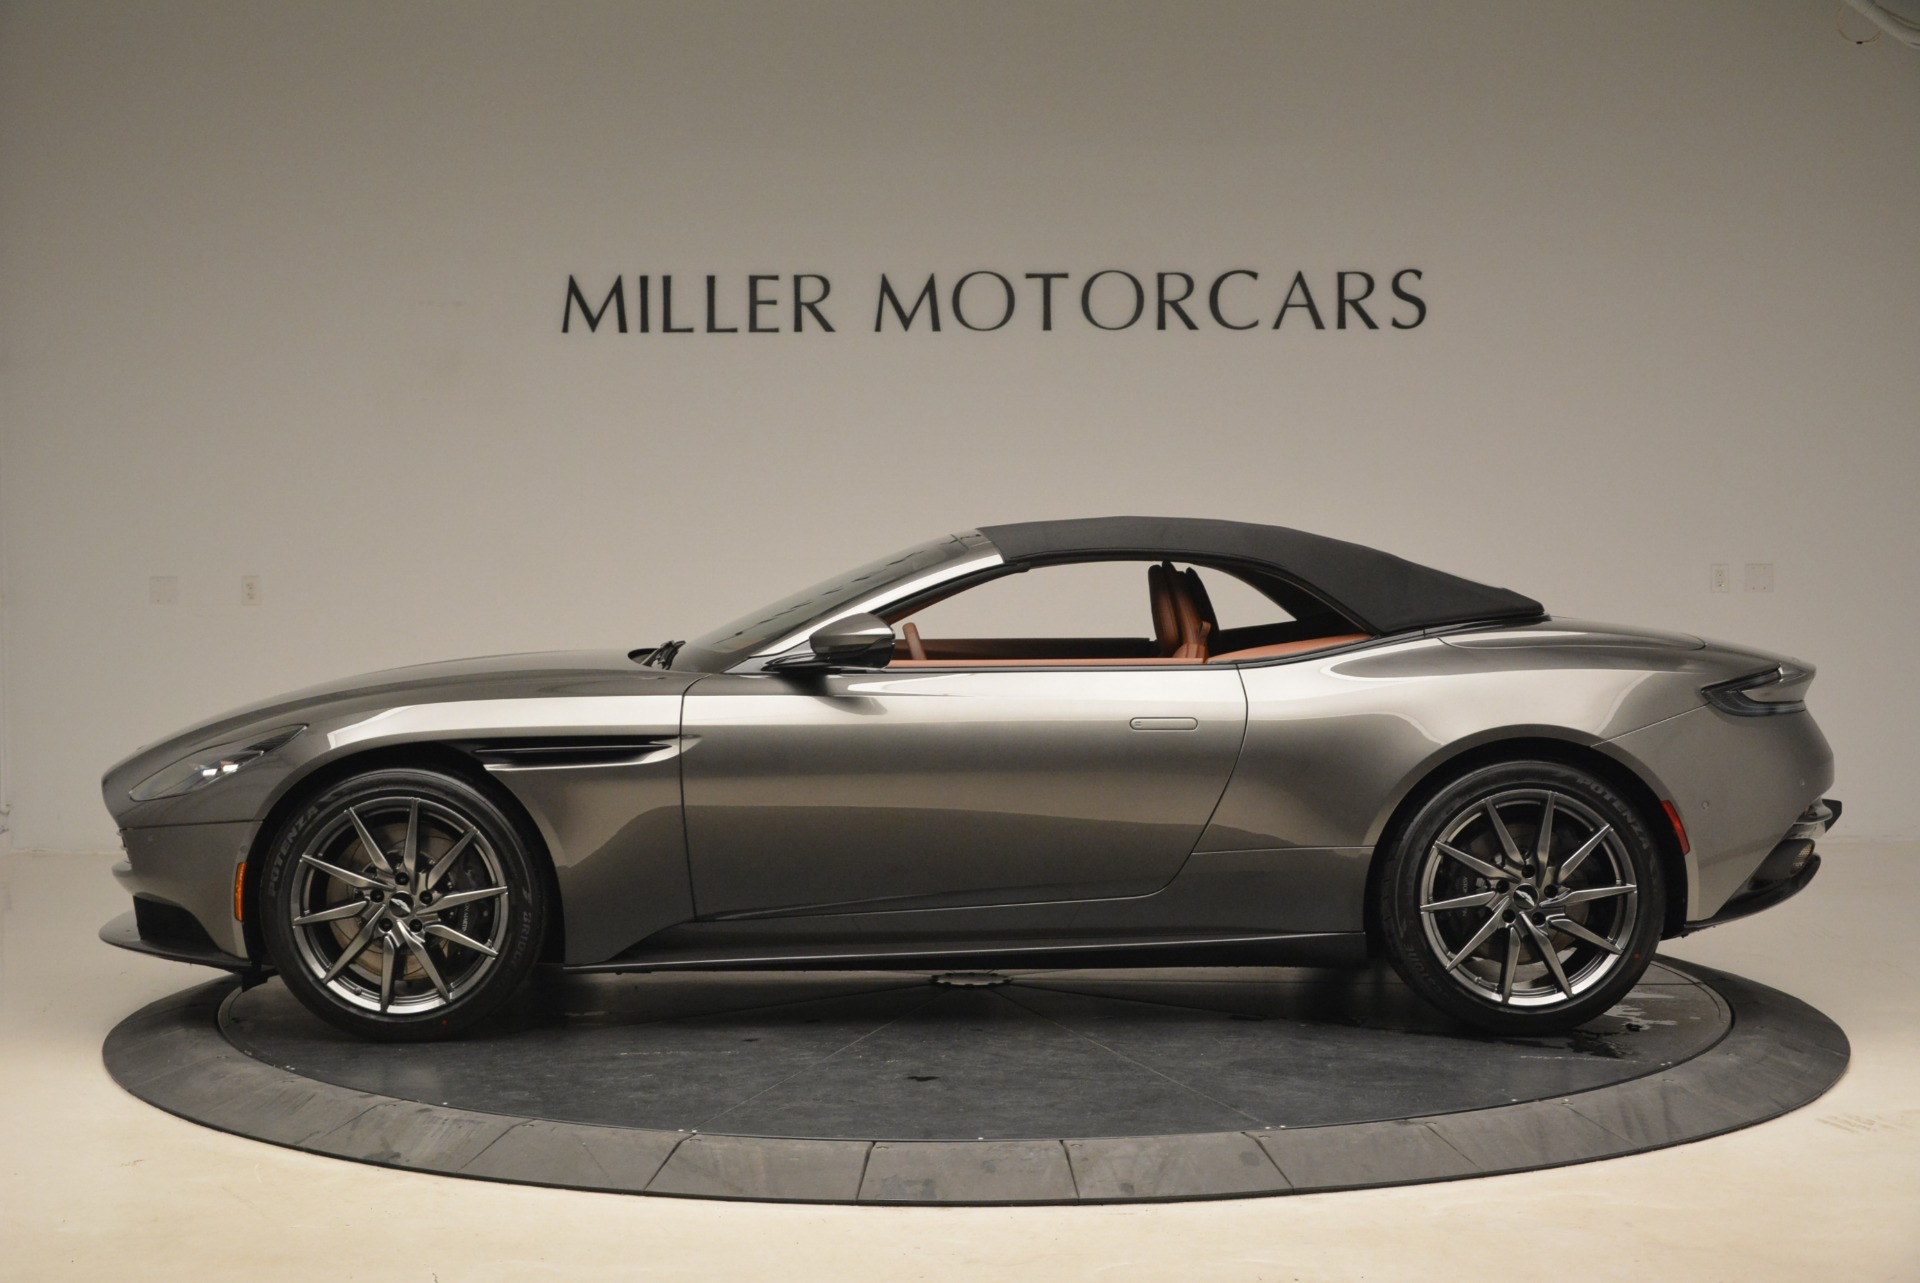 New 2019 Aston Martin DB11 Volante  For Sale In Greenwich, CT. Alfa Romeo of Greenwich, A1284 2209_p15